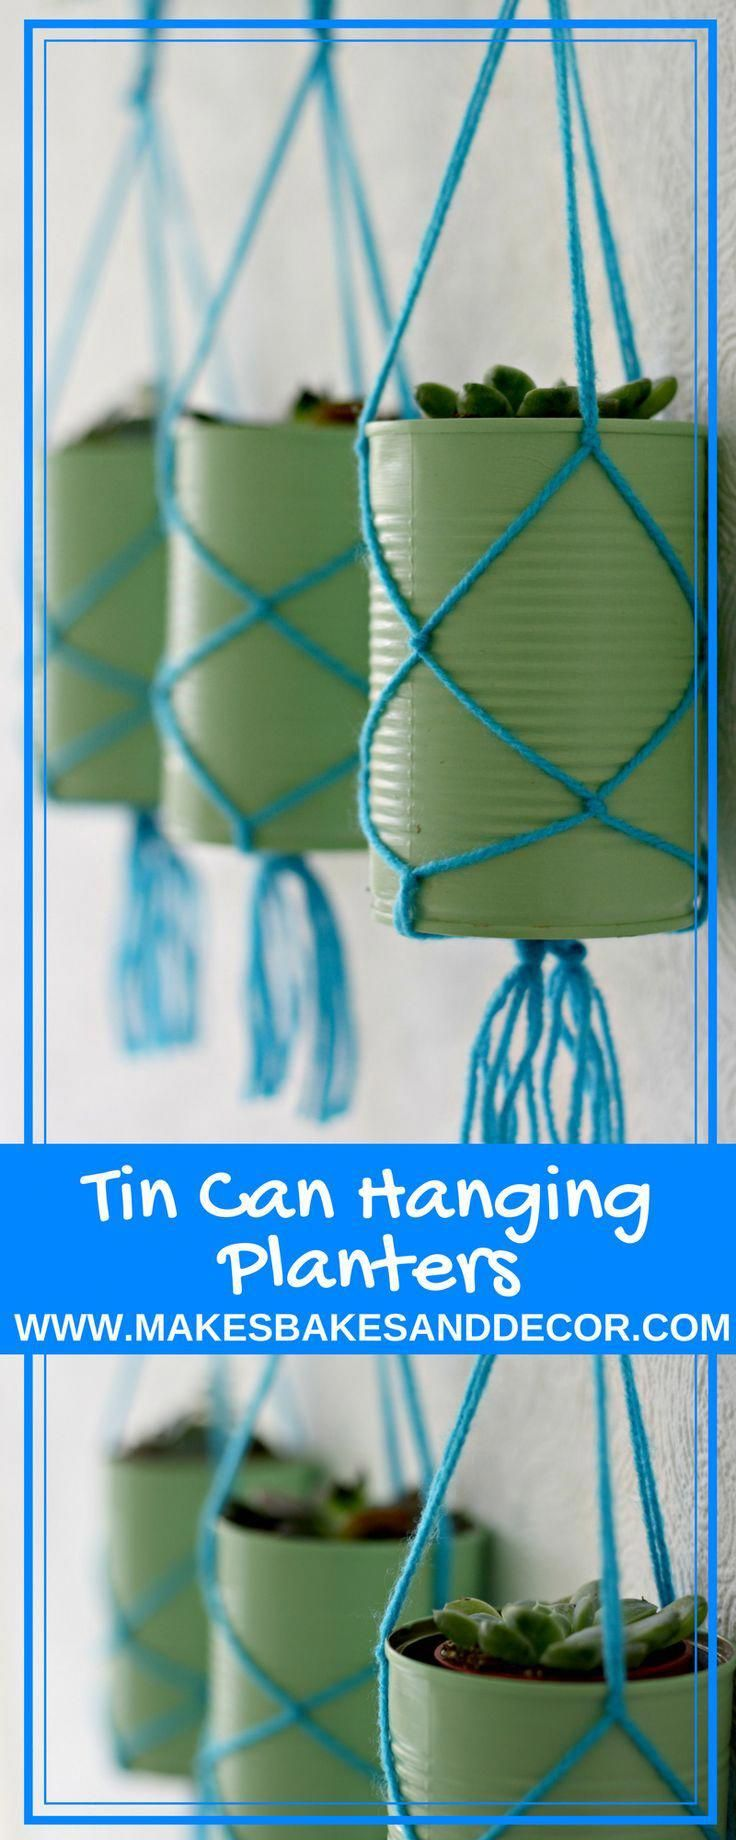 Tin Can Hanging Planters - Makes, Bakes and Decor